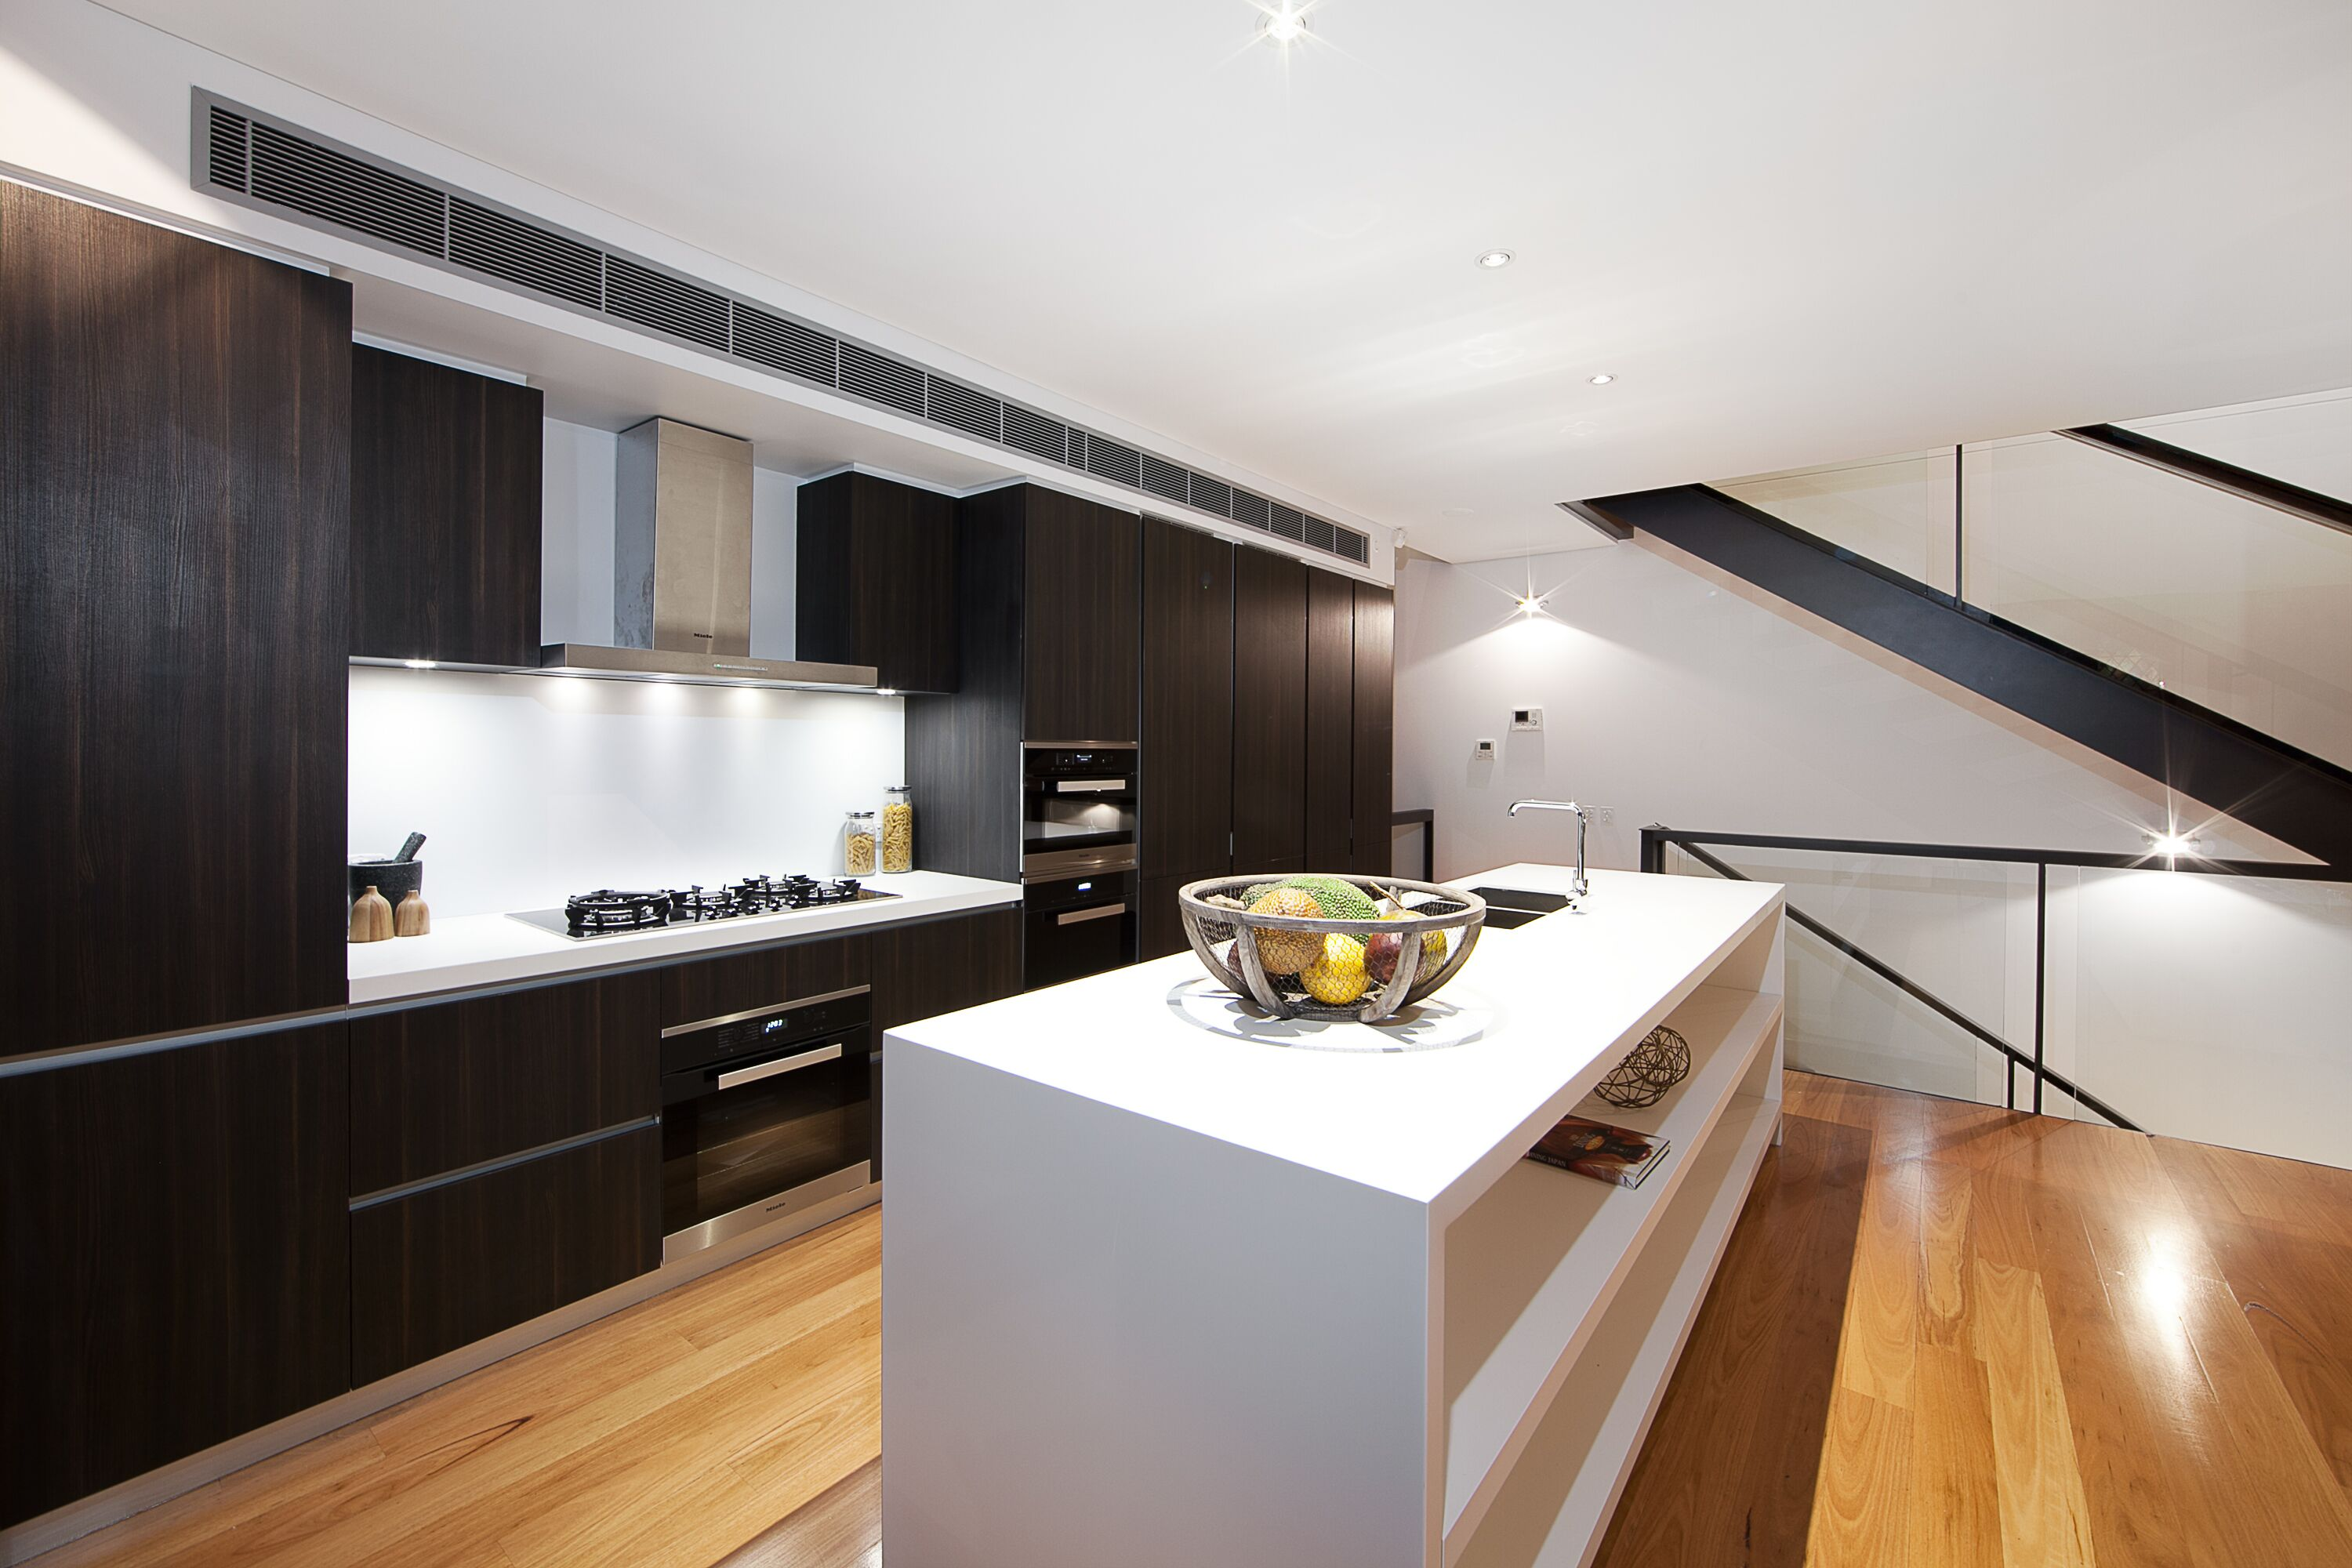 Kitchen area of new Sydney apartments with lighting and electrical work